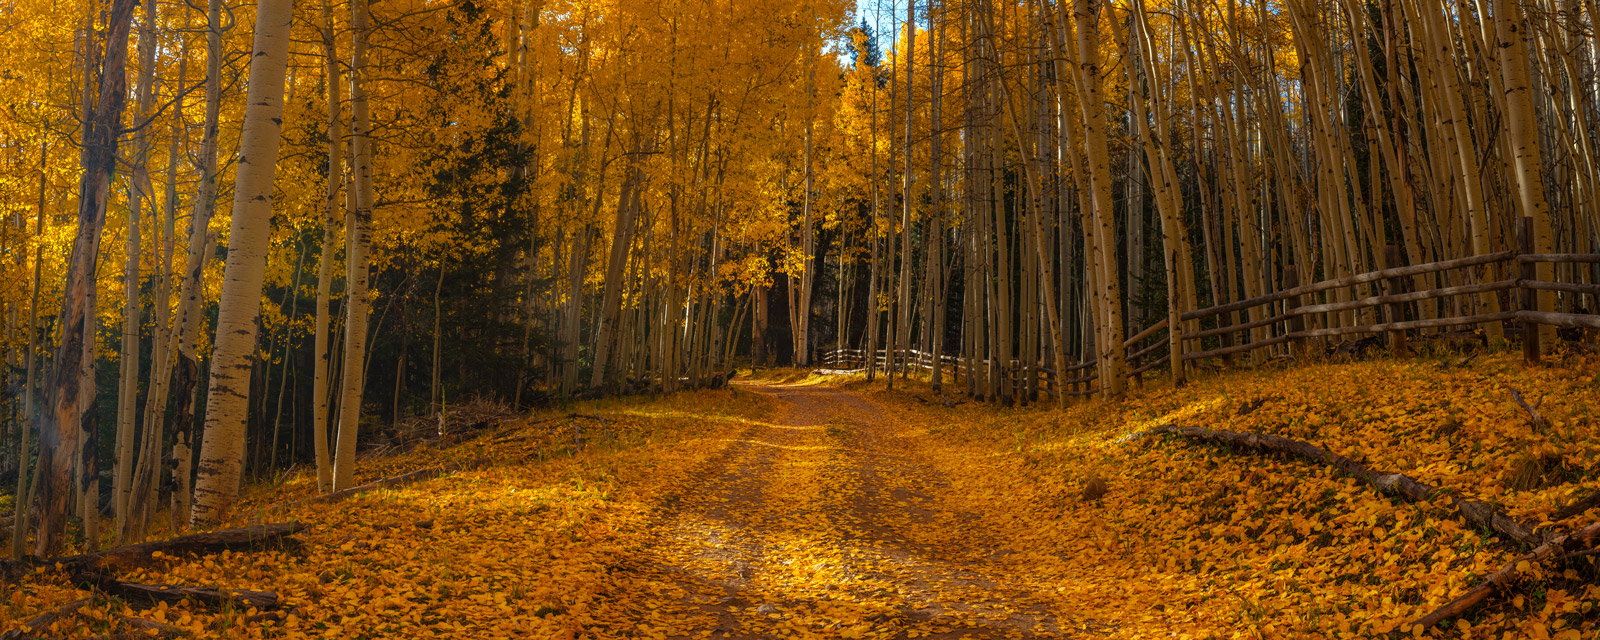 A Limited Edition, Fine Art landscape photograph of a leaf covered back road next to a wooden fence and surrounded by brilliant...